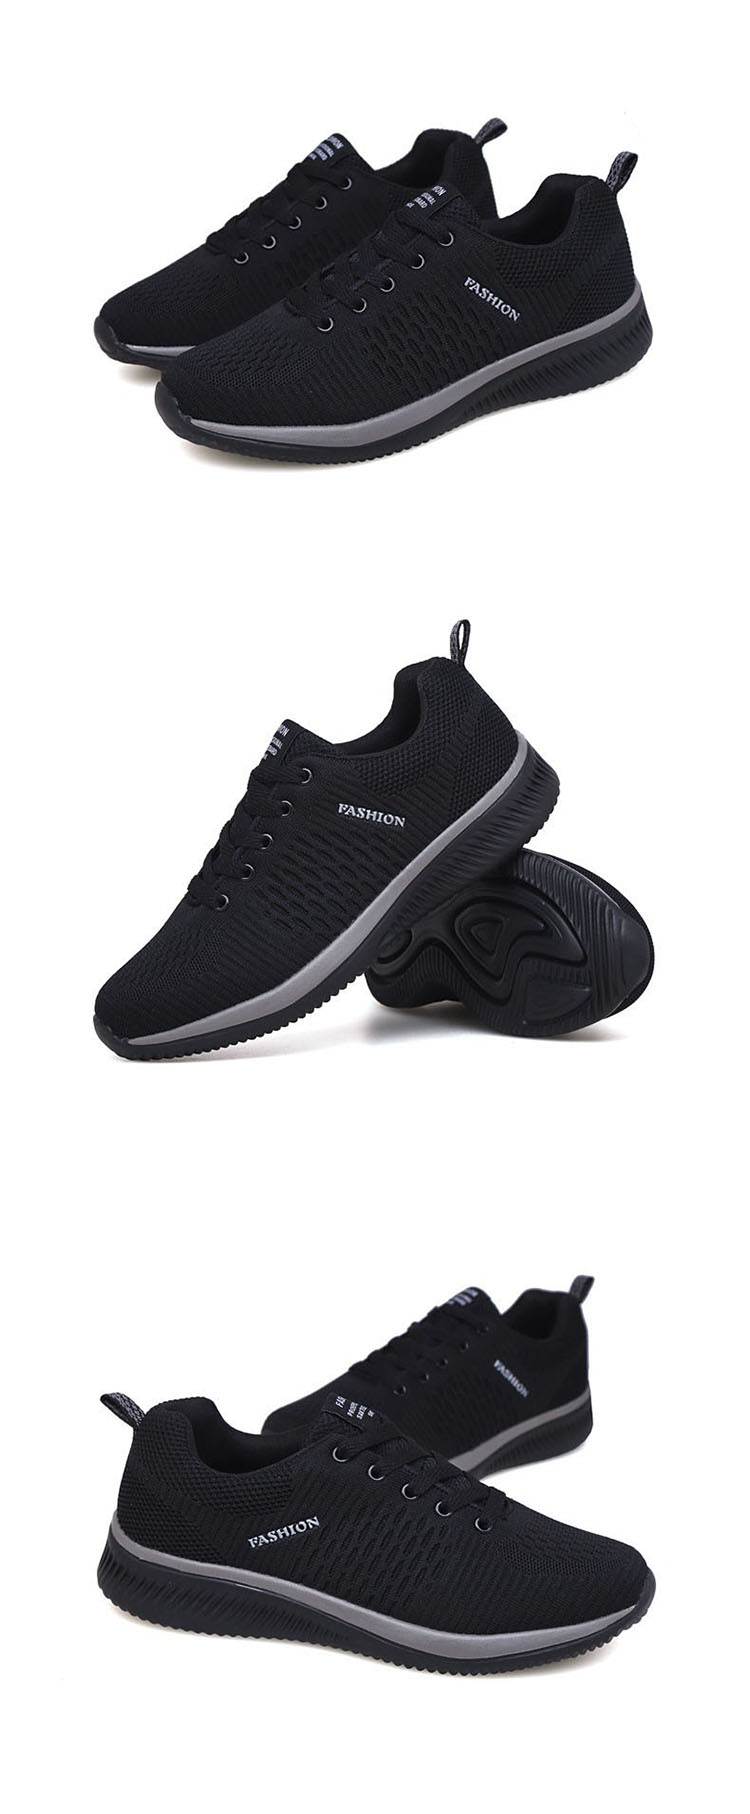 New Women Shoes Fashion Sneakers Casual Shoes Women's Casual Sneaker Women Vulcanize Shoes Platform Sneakers Platform Trainers